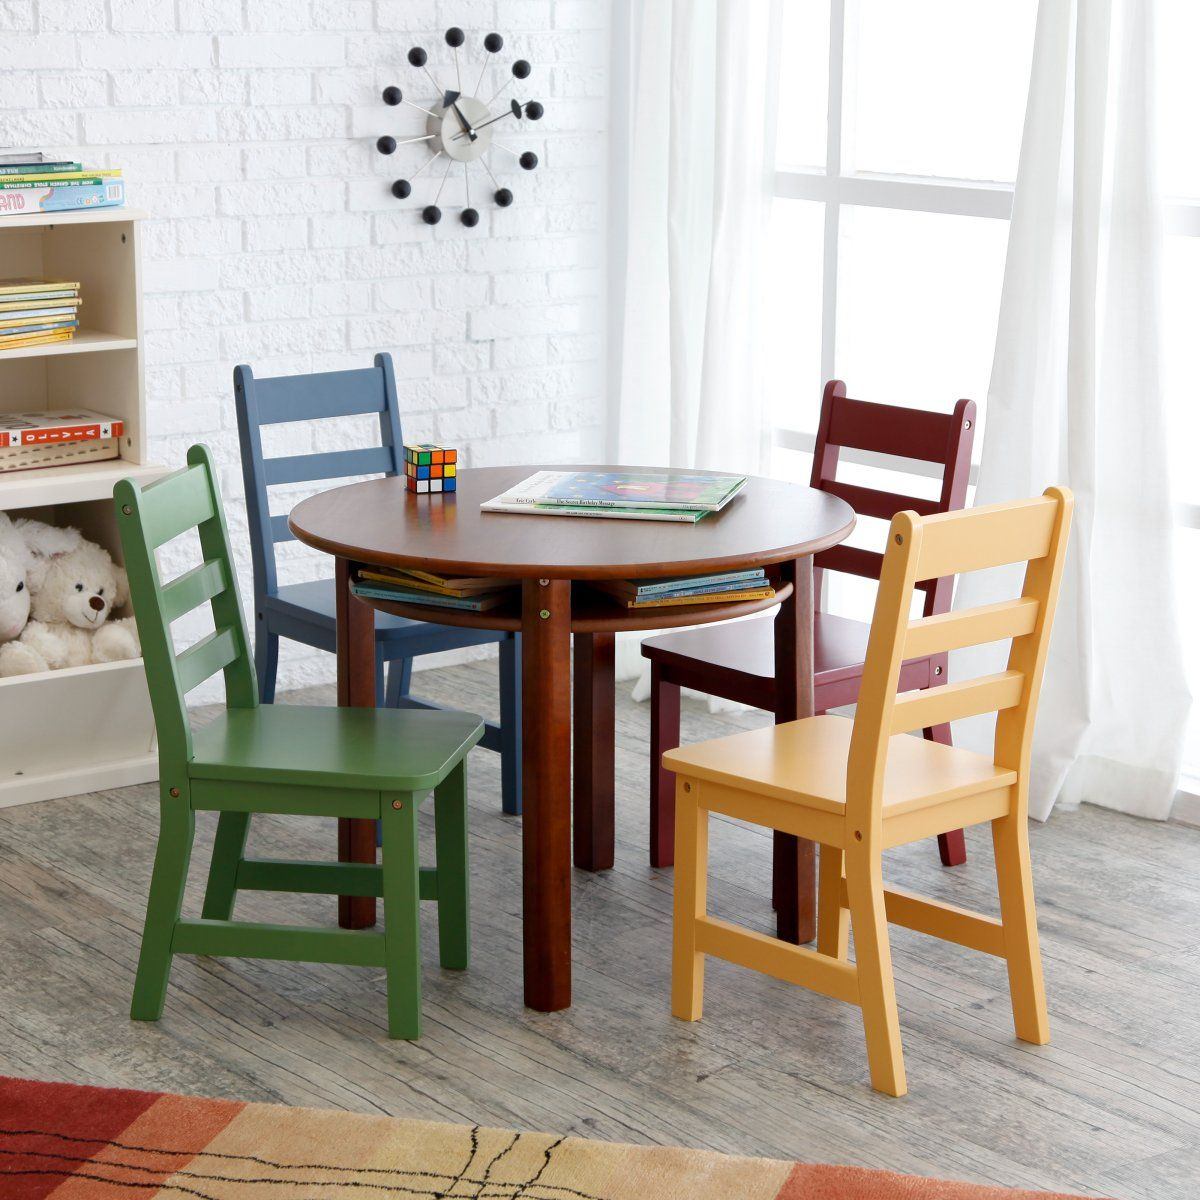 lipper childrens walnut round table and  chairs  childrens table  - lipper childrens walnut round table and  chairs  childrens table andchair sets at childrens